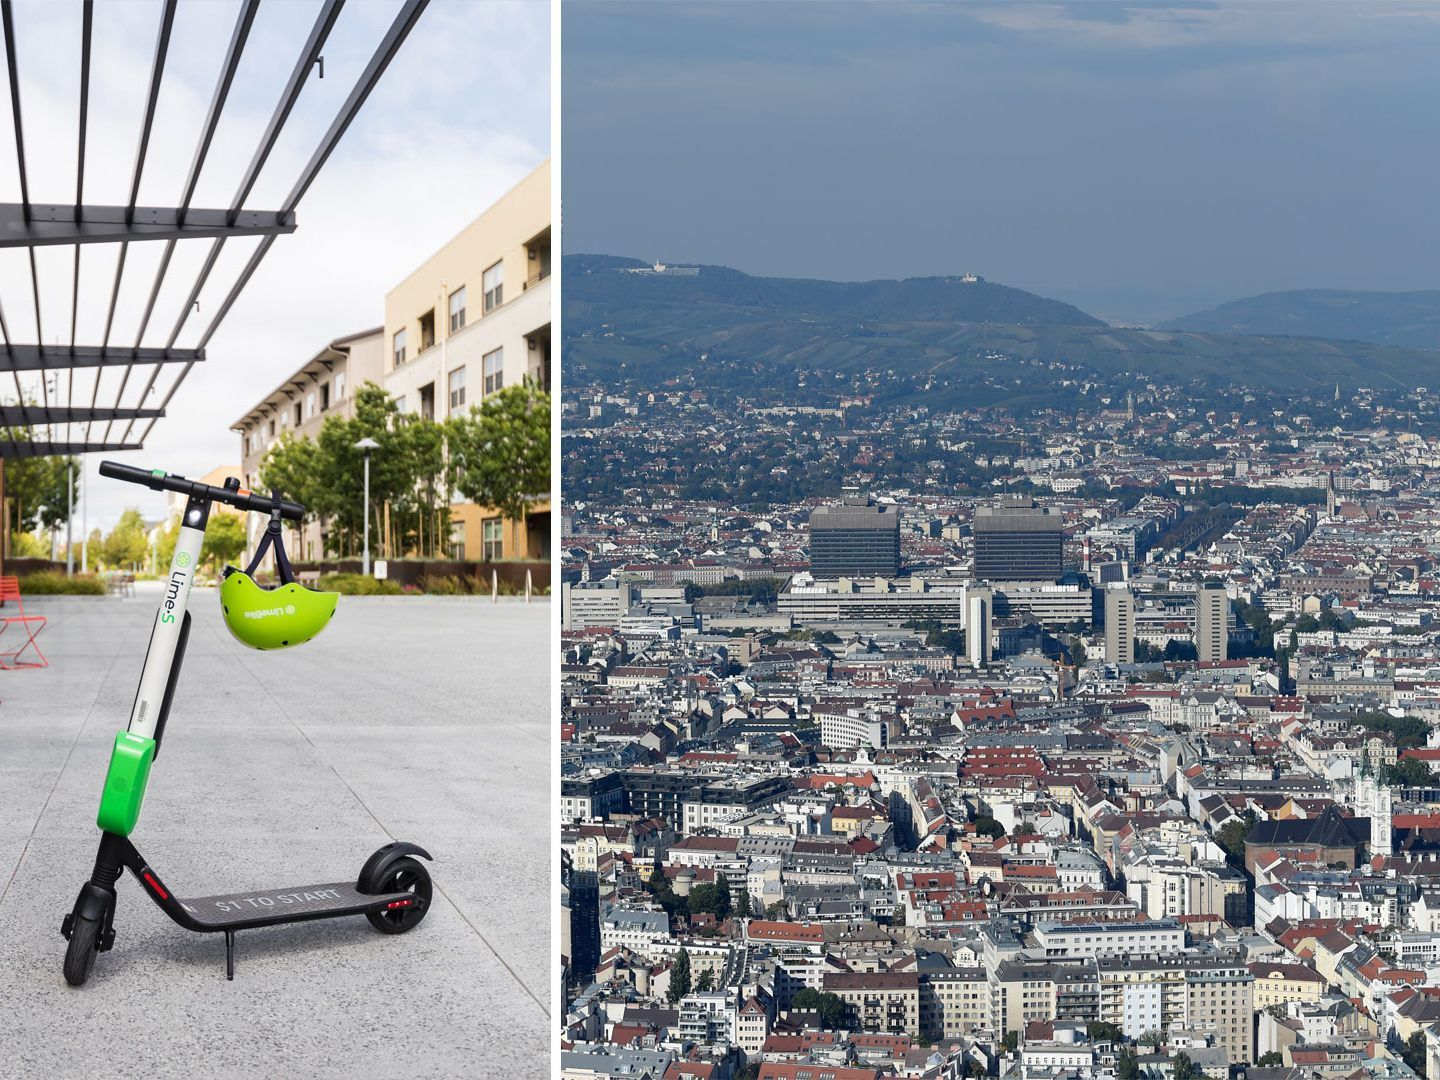 """Lime"" startet sein E-Scooter-Sharing in Wien."